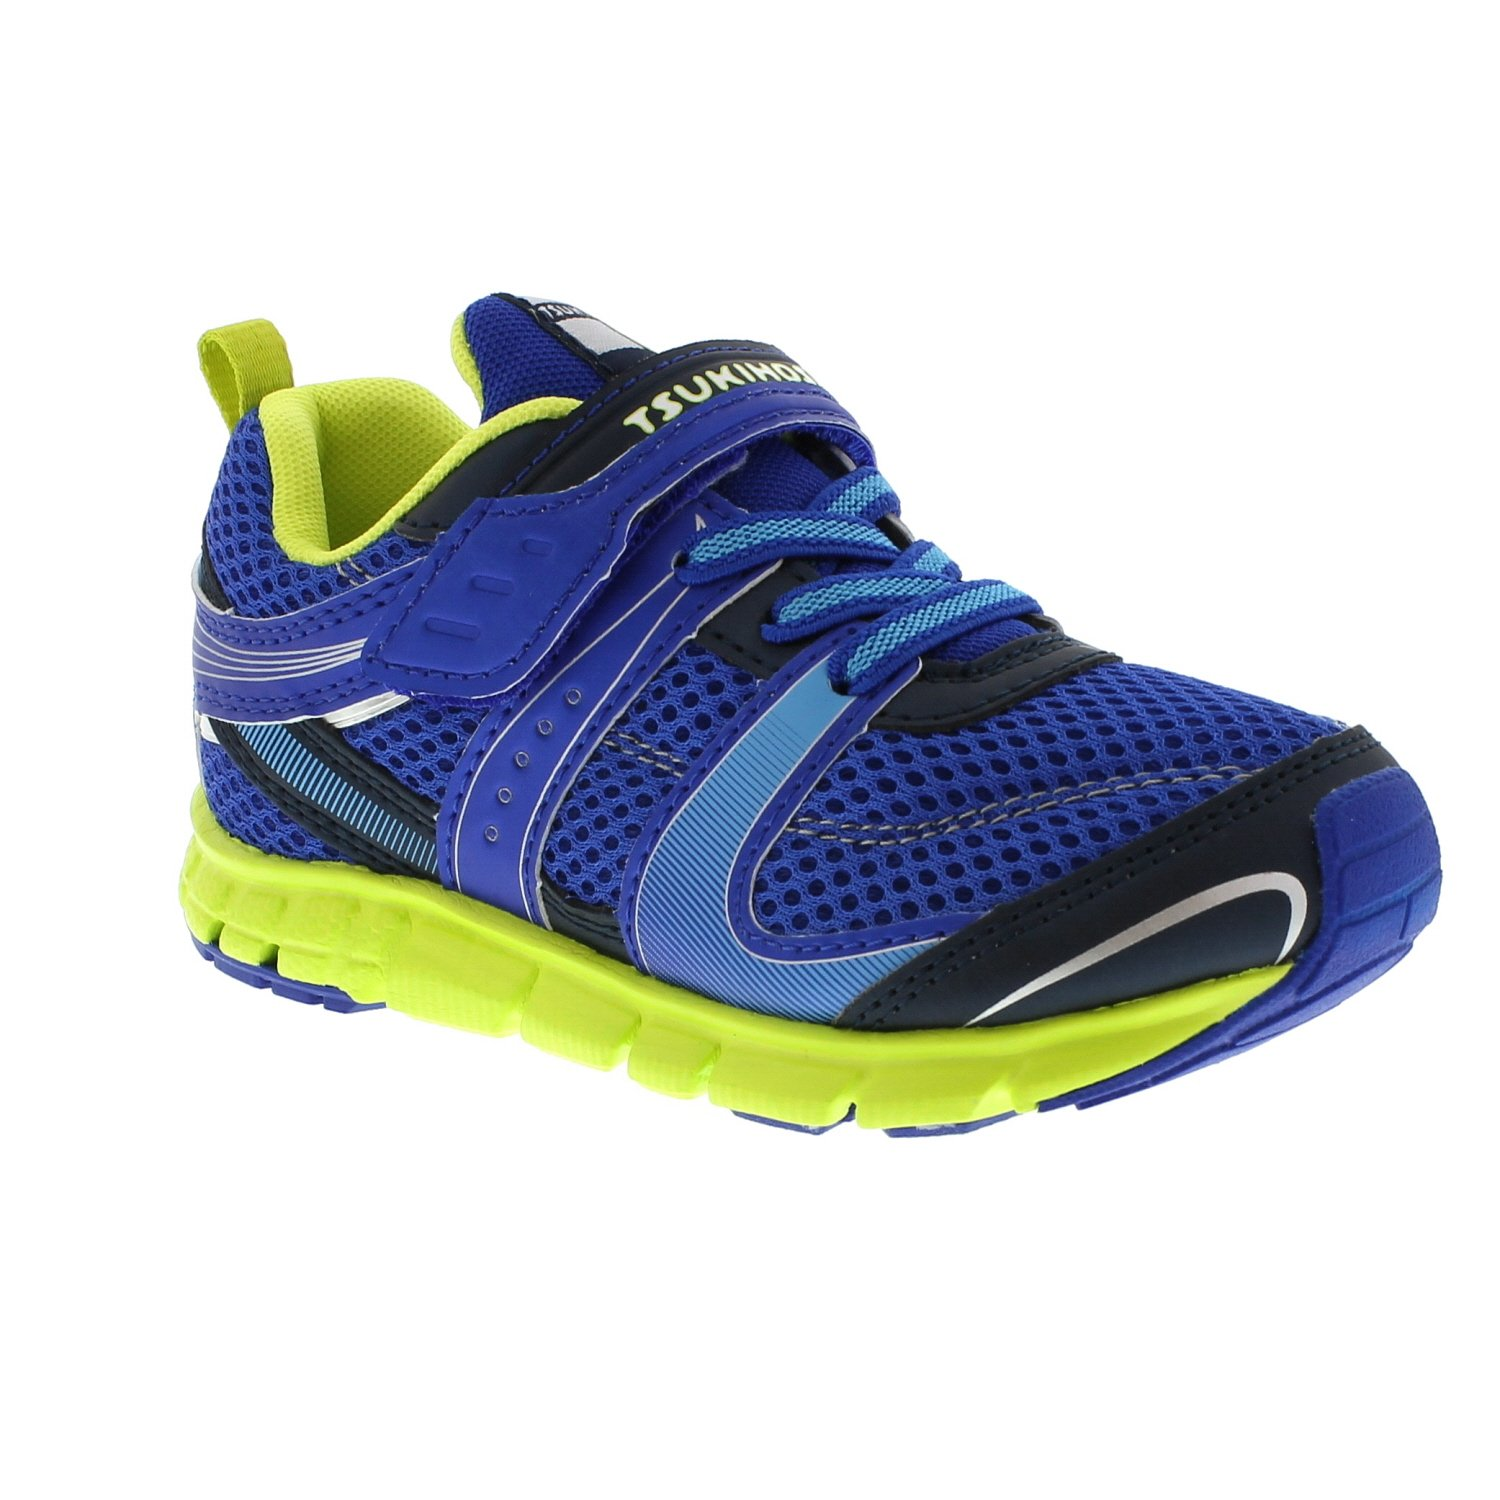 TSUKIHOSHI Boy's, Velocity Kids Sneakers Blue Lime 13.5 M